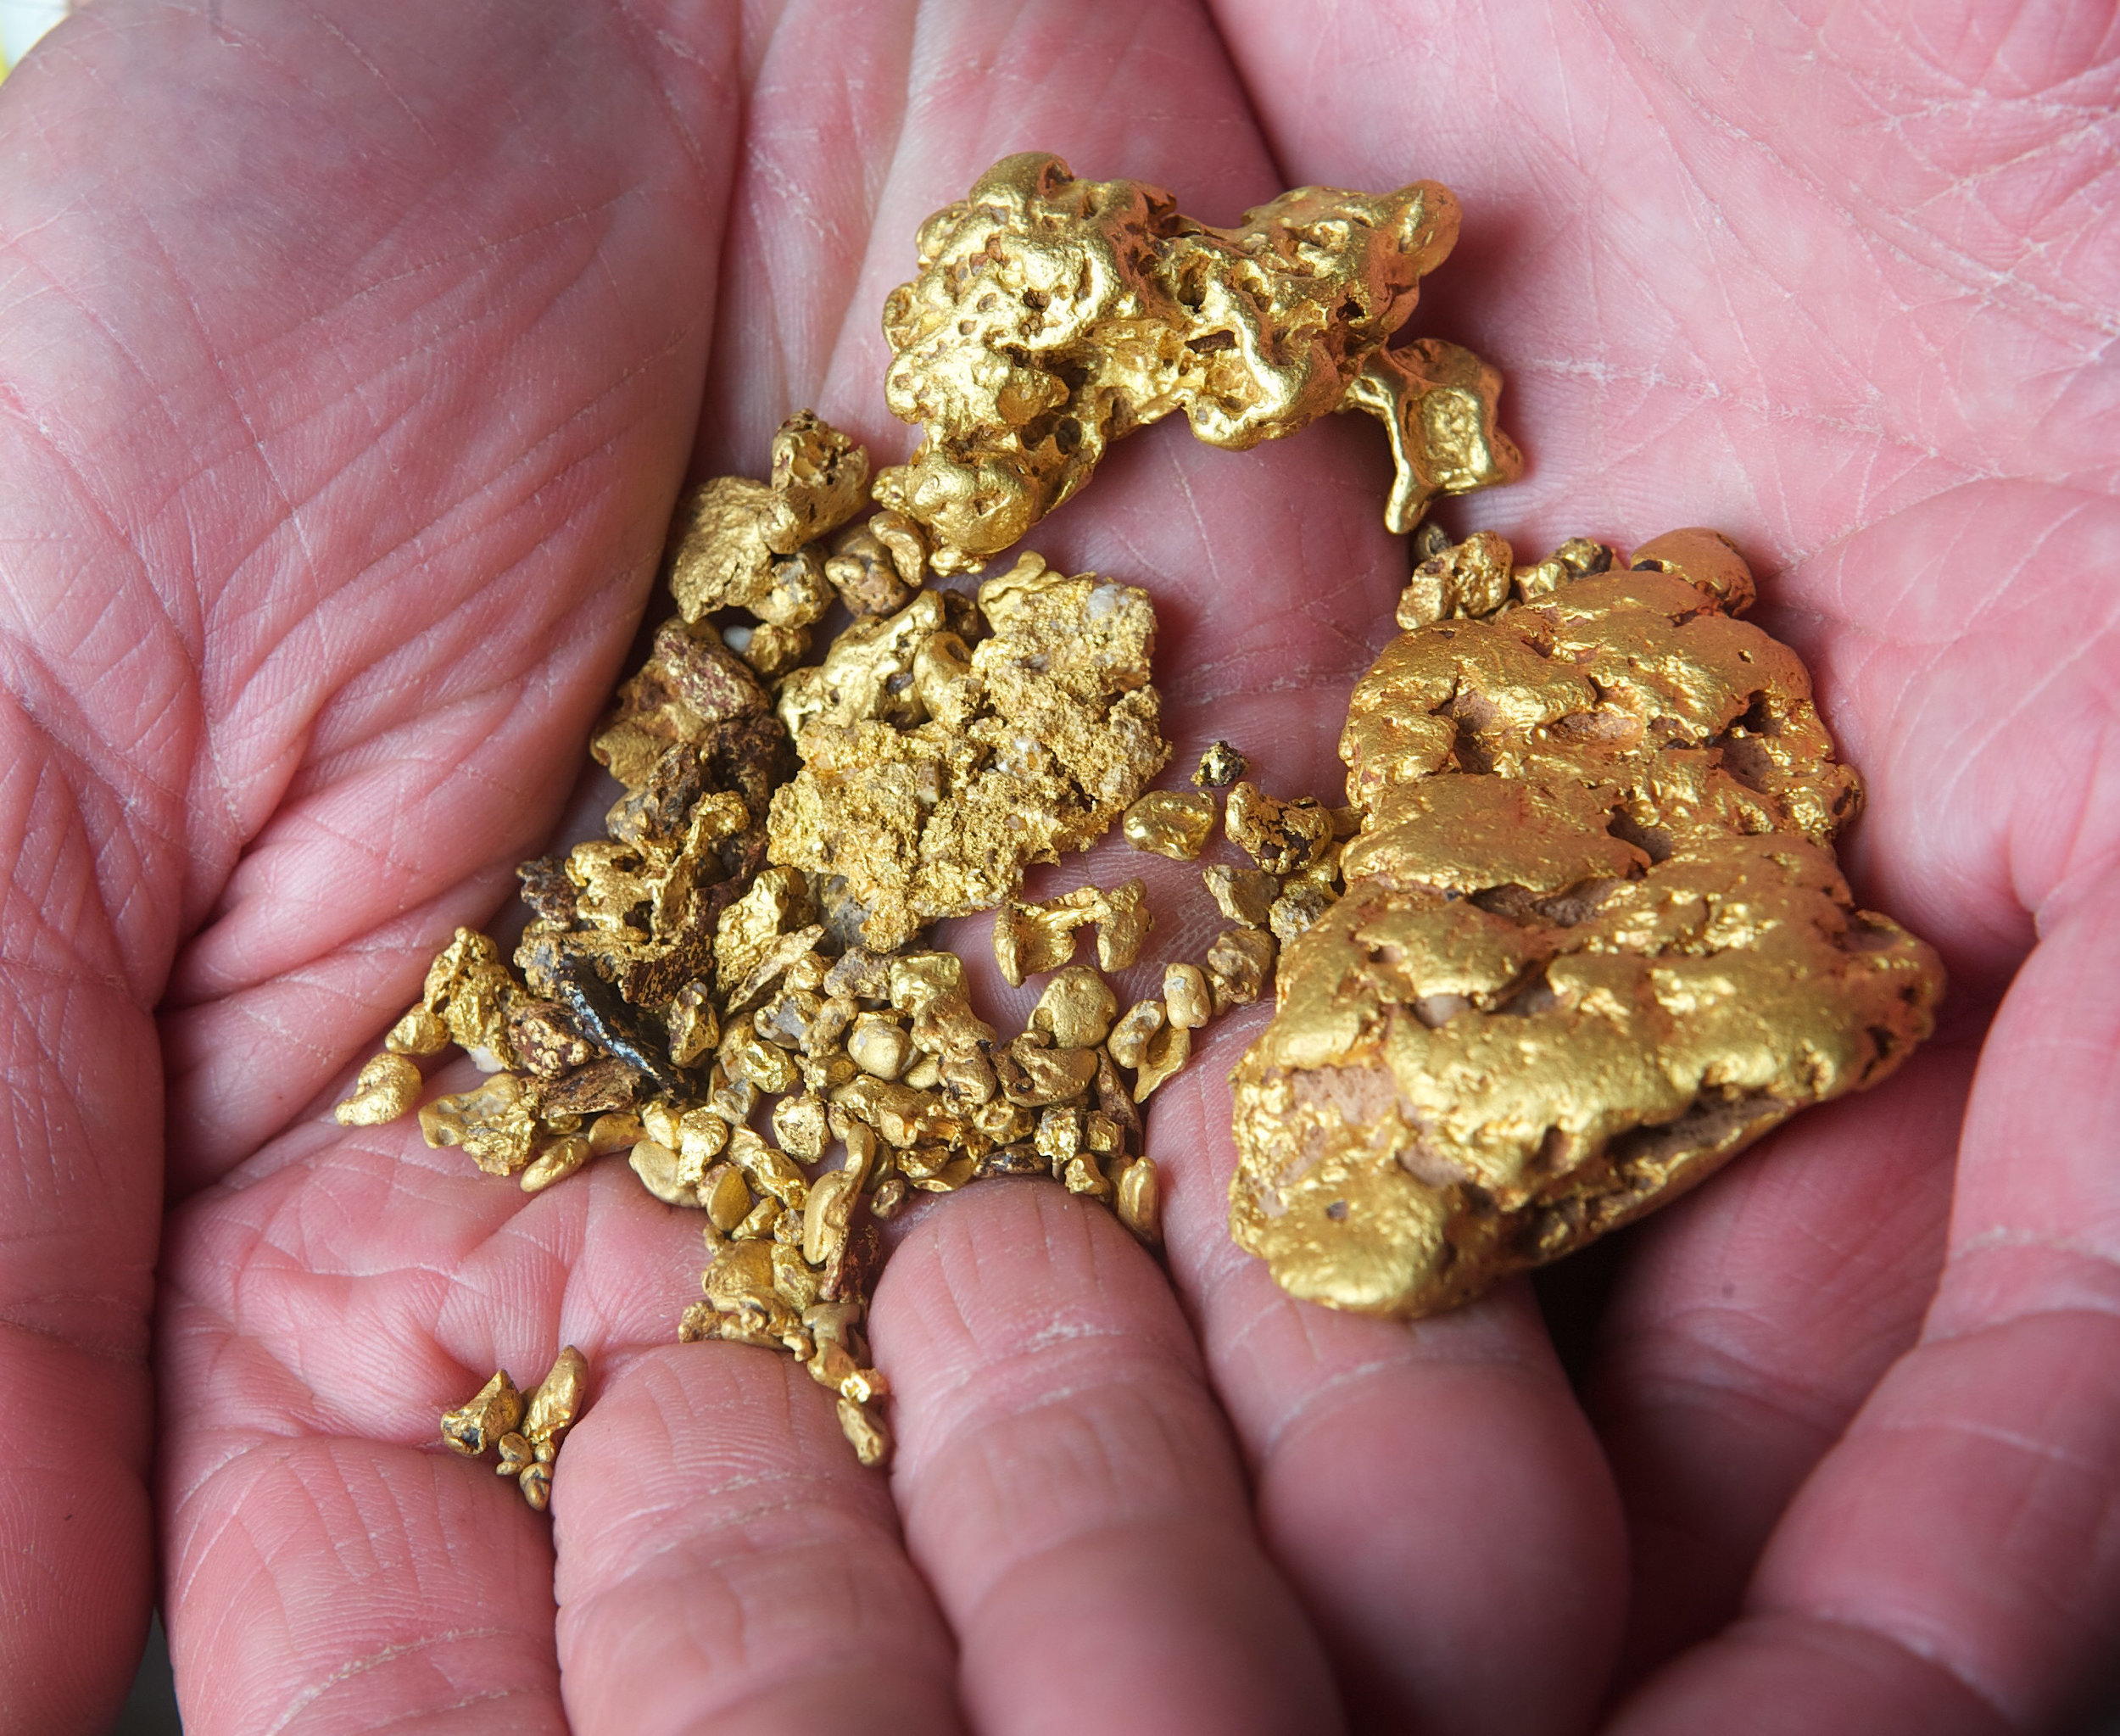 CHP_Export_3416134_Gold Fever n Over 10000 of nuggets found by Gold detectors in Central Victoria ..jpg